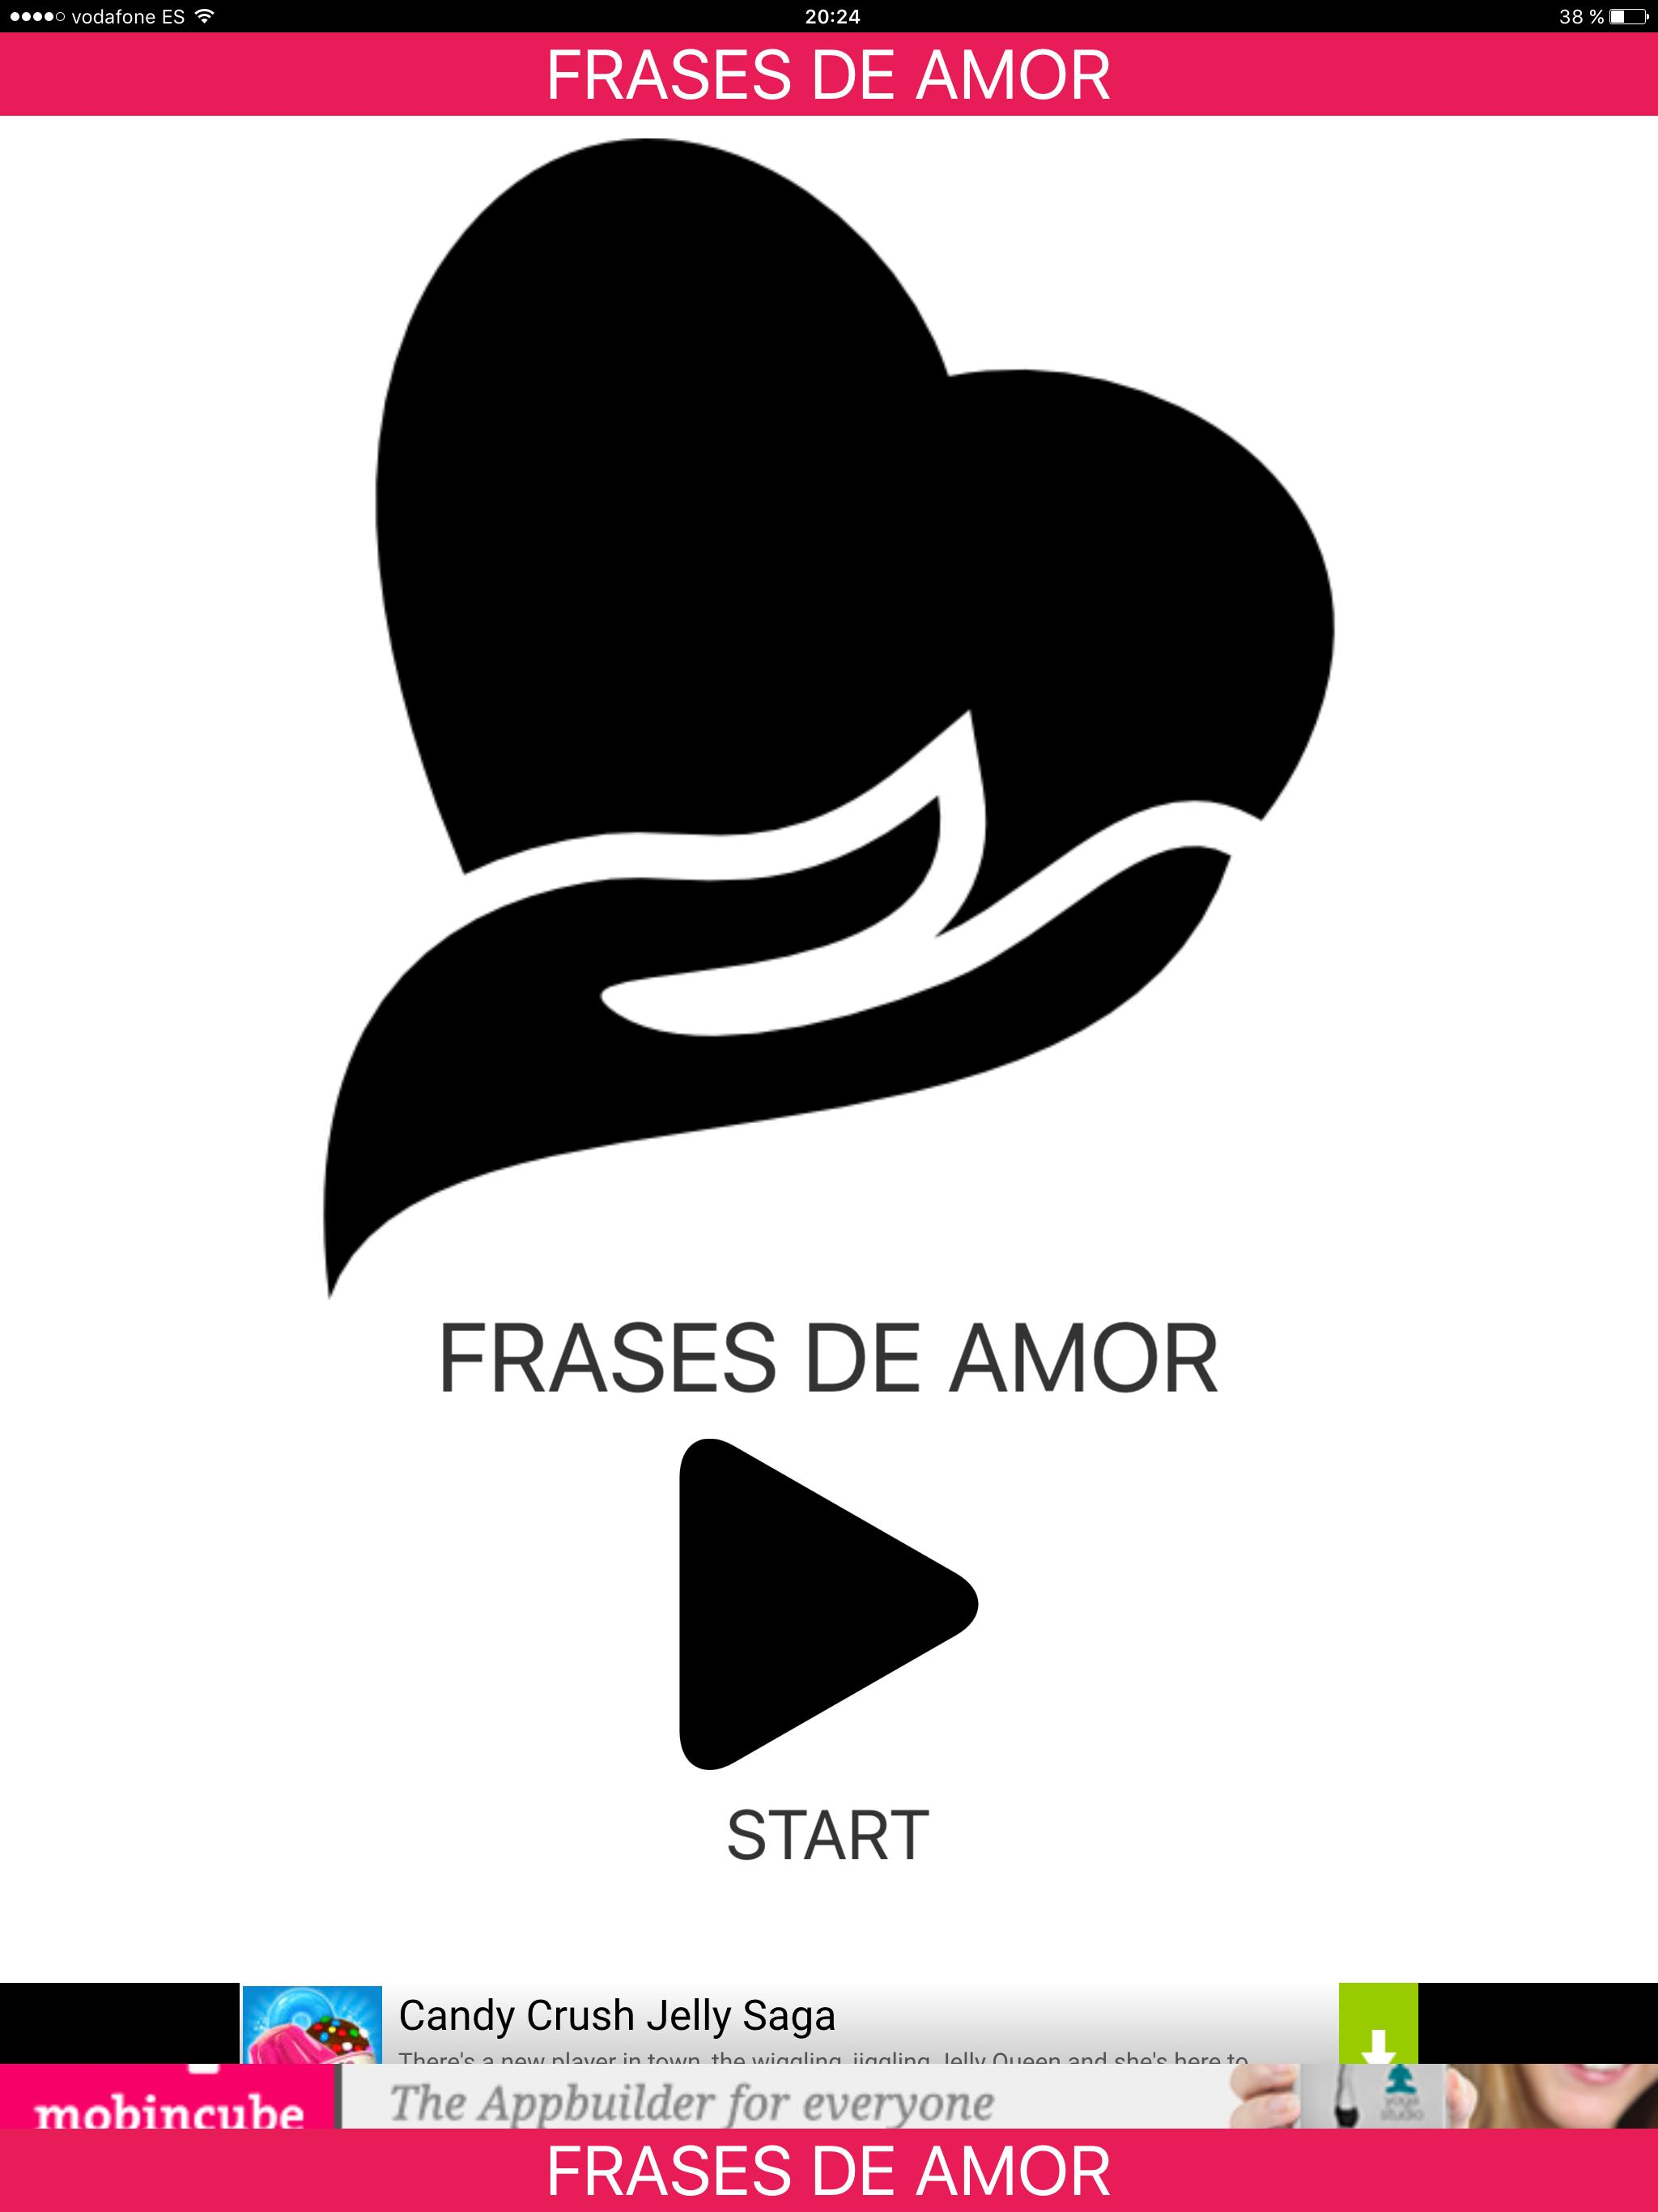 Frases De Amor Y Sensuales For Android Apk Download